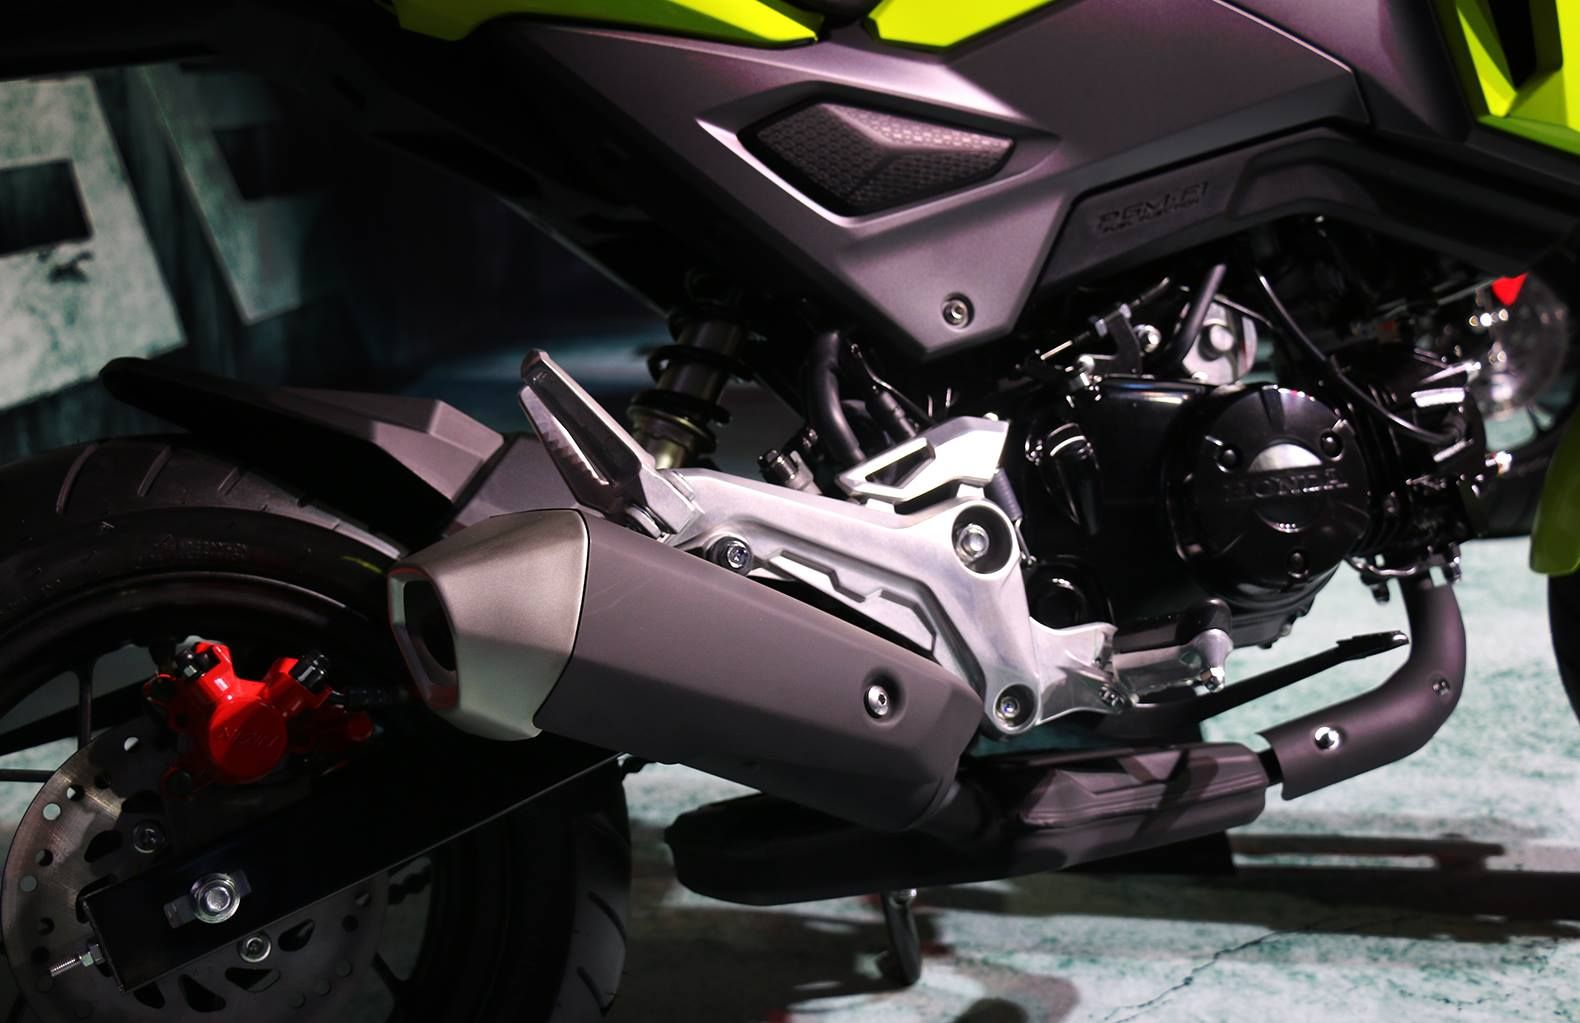 New 2016 Honda MSX 125 Changes Review / Specs - Grom Changes Coming ...